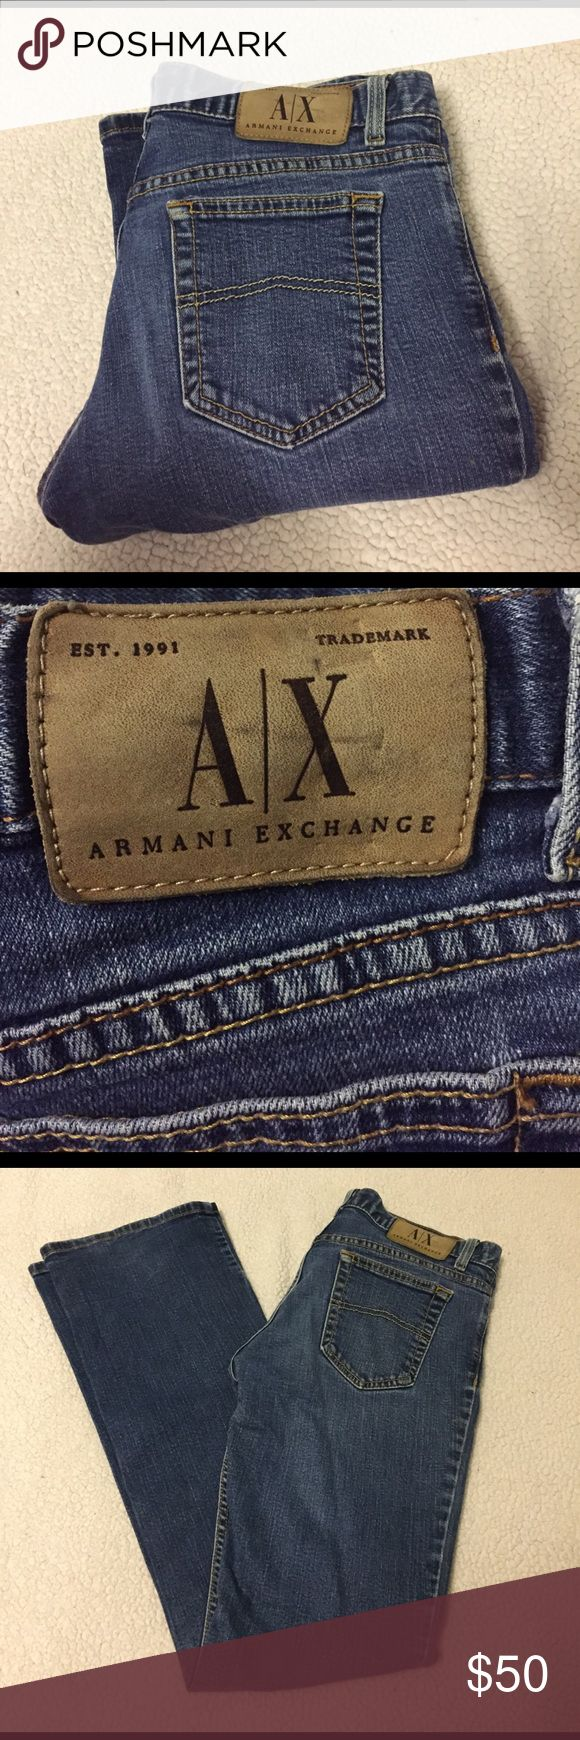 Armani Exchange Low Rise Boot Cut Jeans In great condition! Boot cut, low rise, dark wash. 40 1/2 inches in length A/X Armani Exchange Jeans Boot Cut